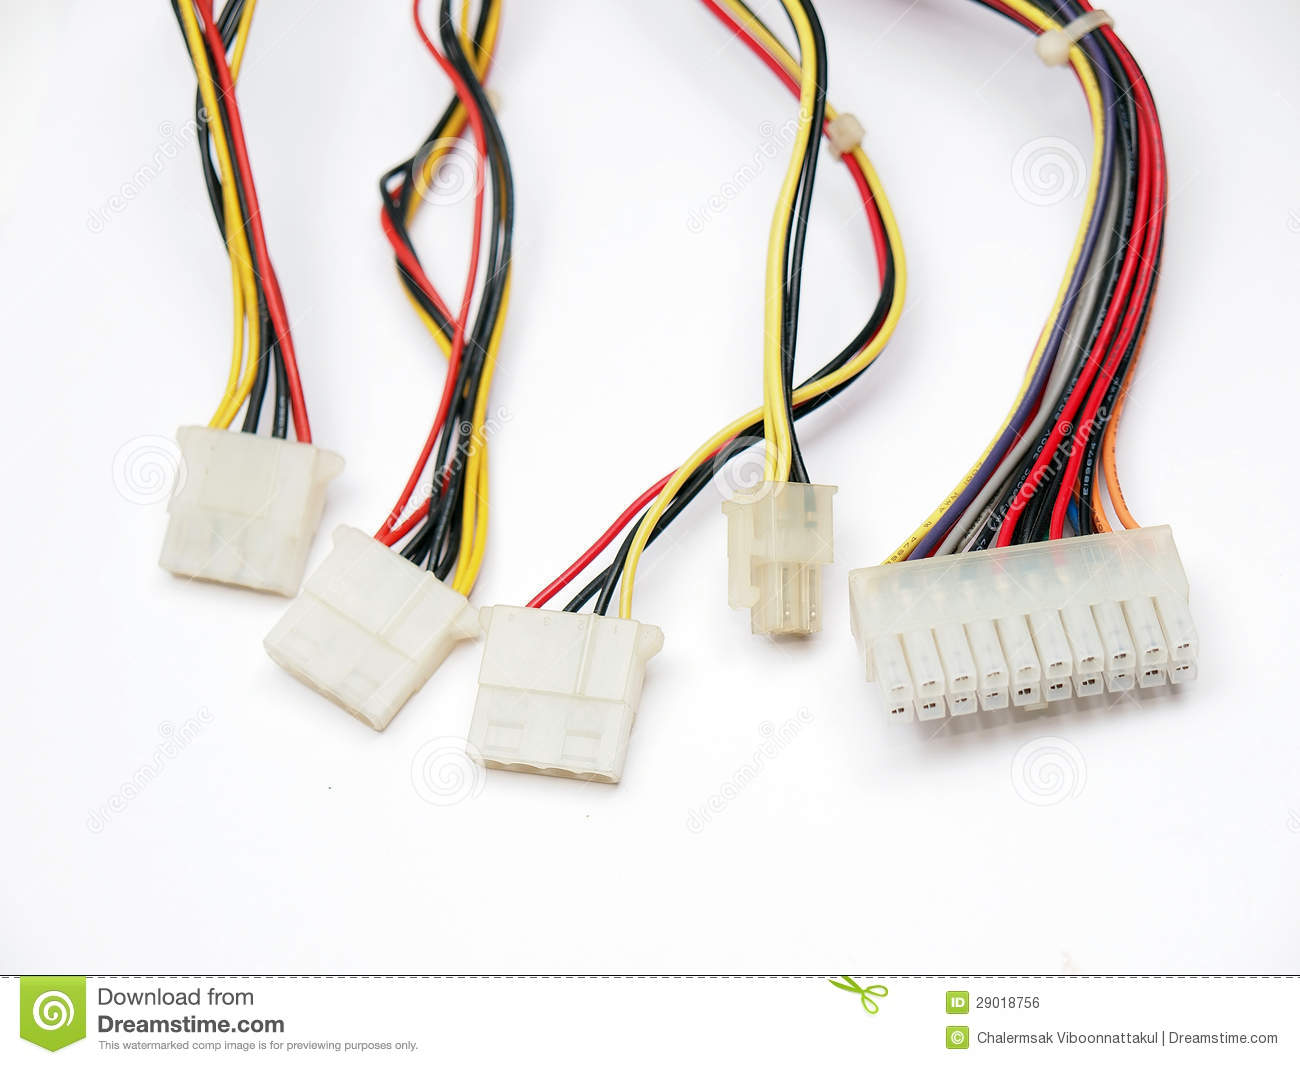 Electrical Connectors Royalty Free Stock Image - Image: 29018756